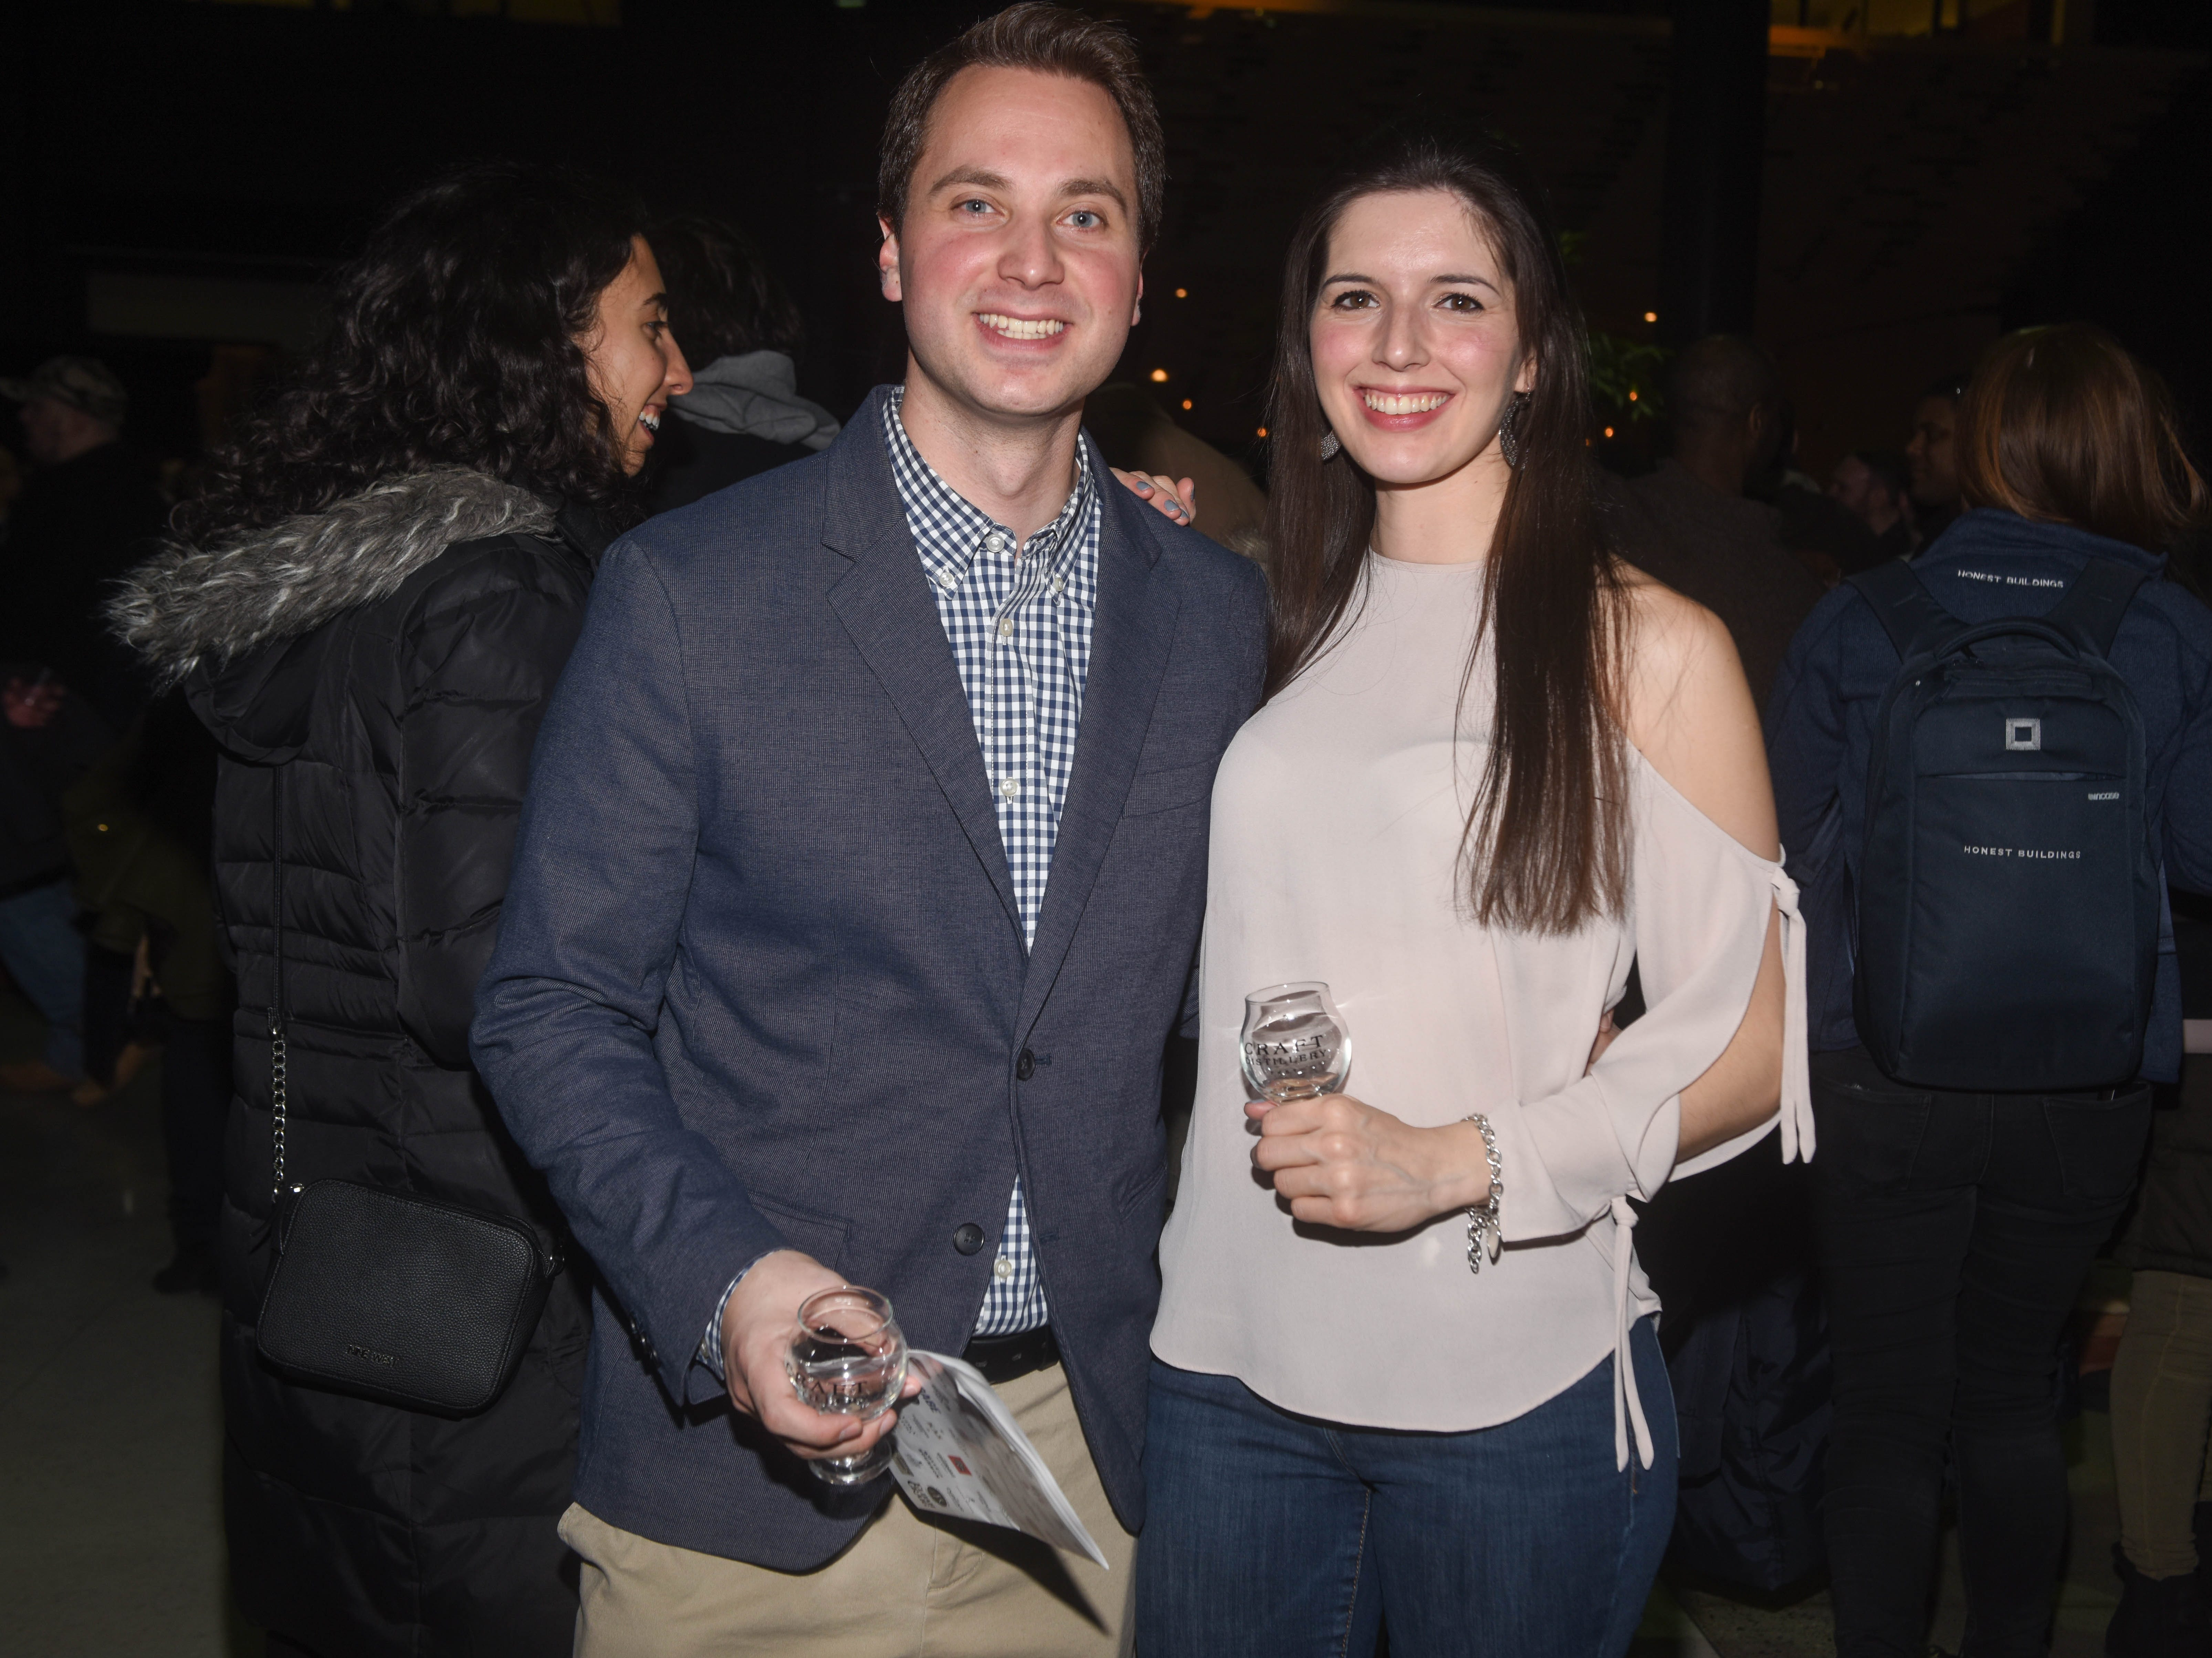 Chris and Tracey. Jersey City Whiskey Fest was held at Harborside Atrium. The event featured over 100 styles of whiskey and spirits. 02/01/2019